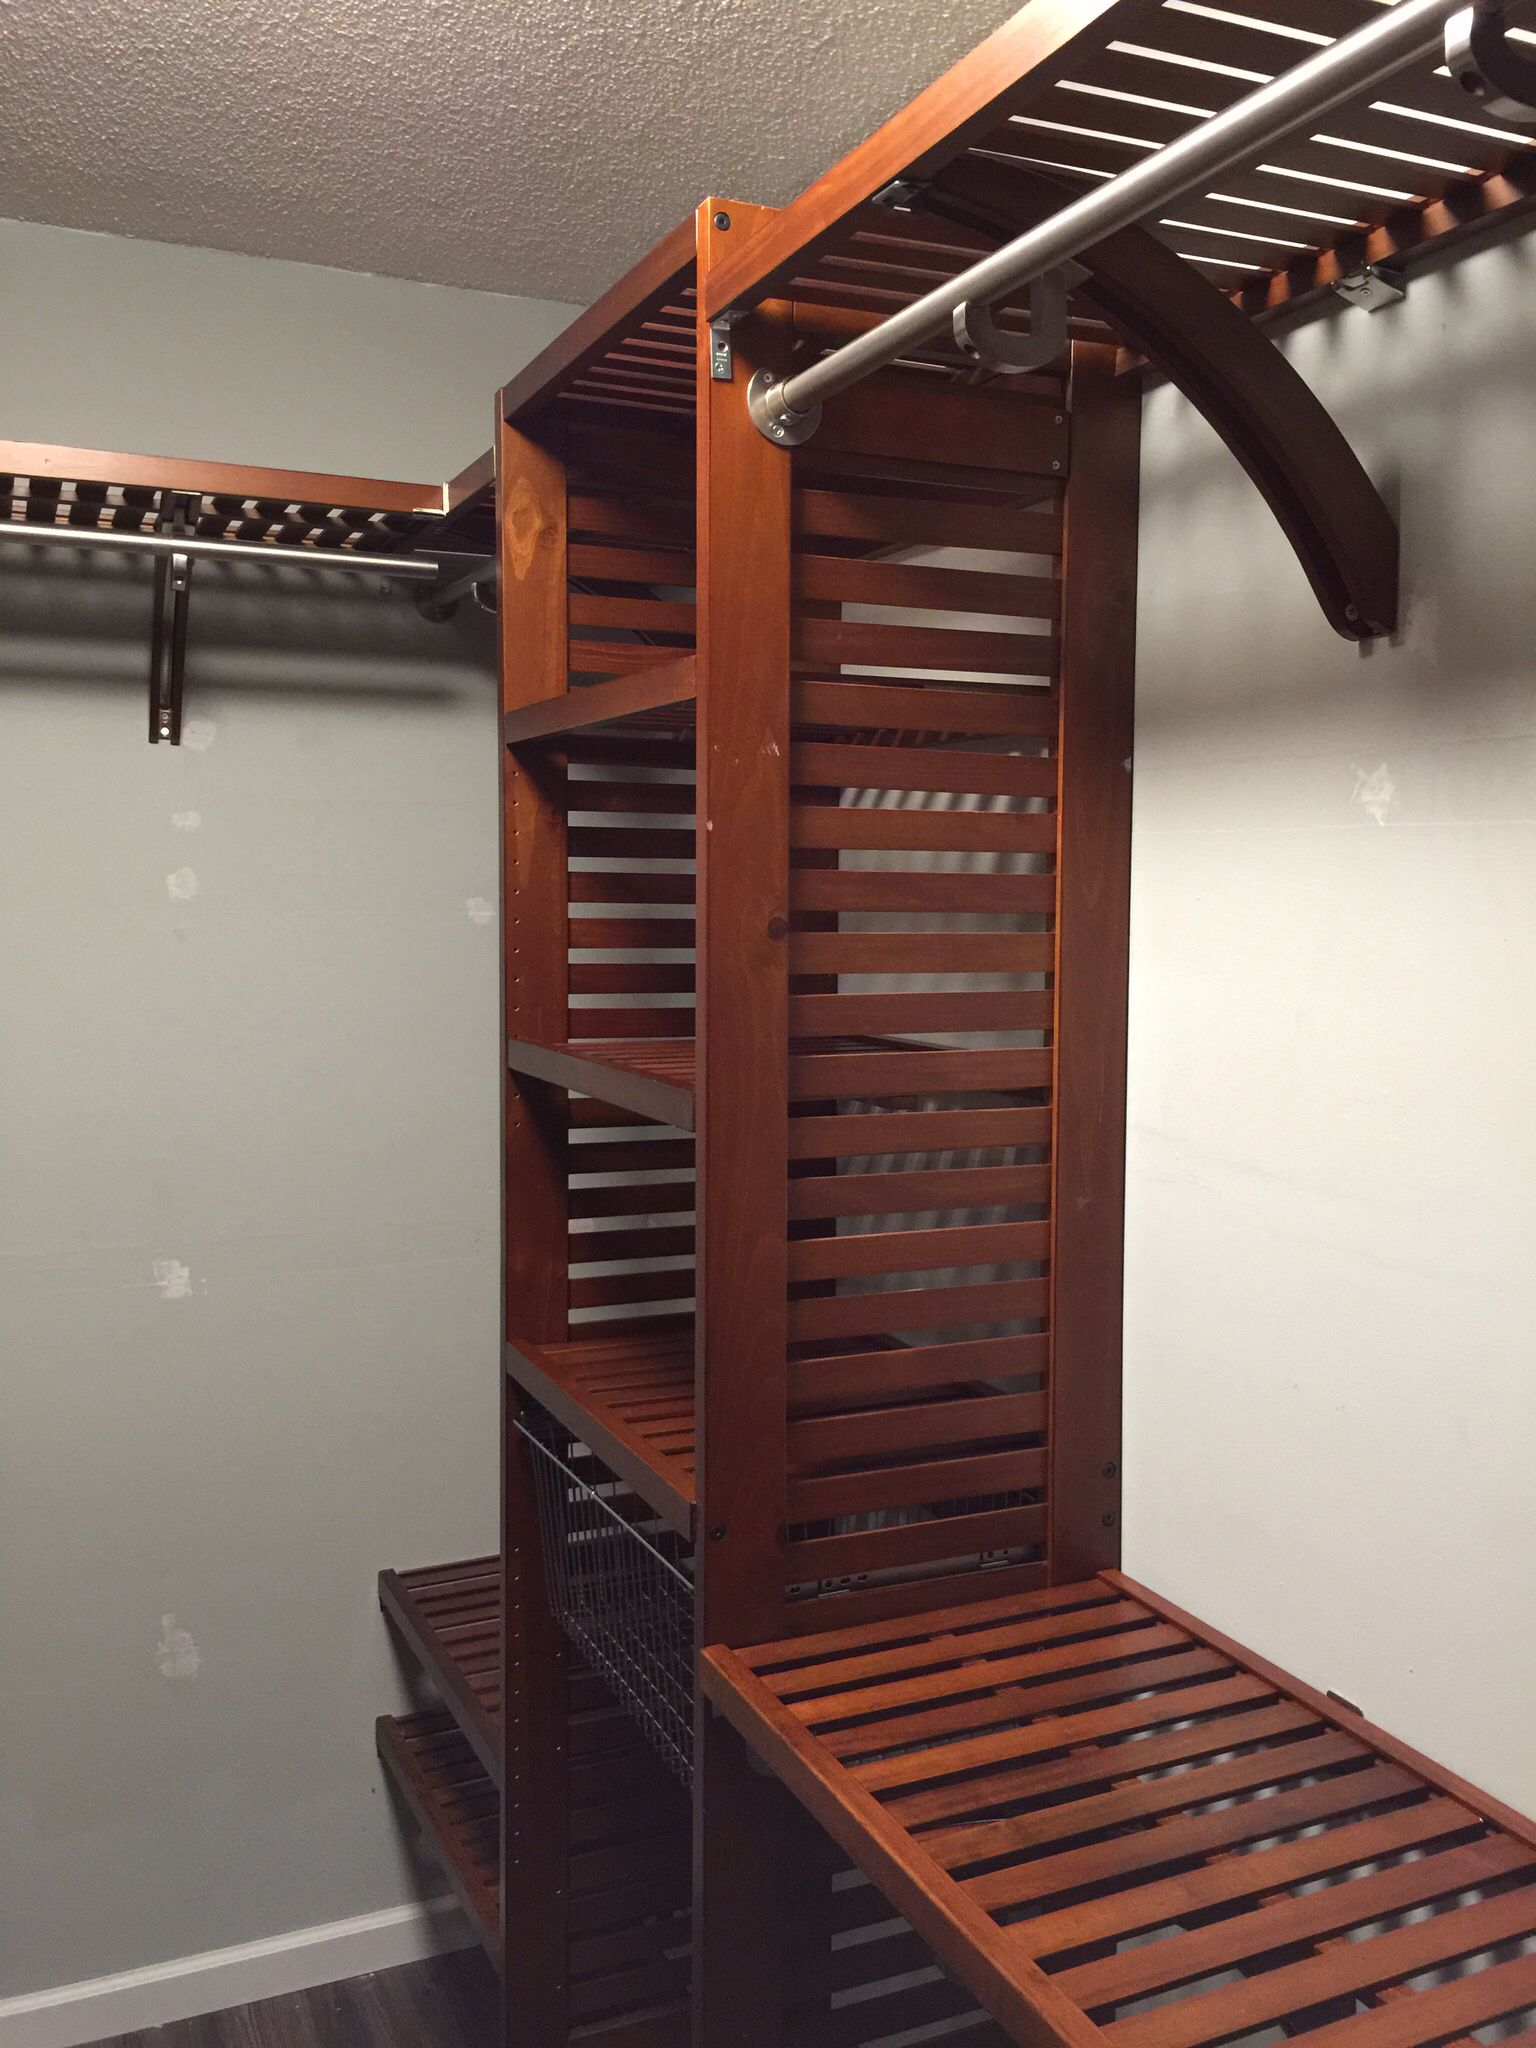 of units depot storage size organizers shelving ideas pantry rack allen full roth kits organizer home shelves closet systems wire lowes